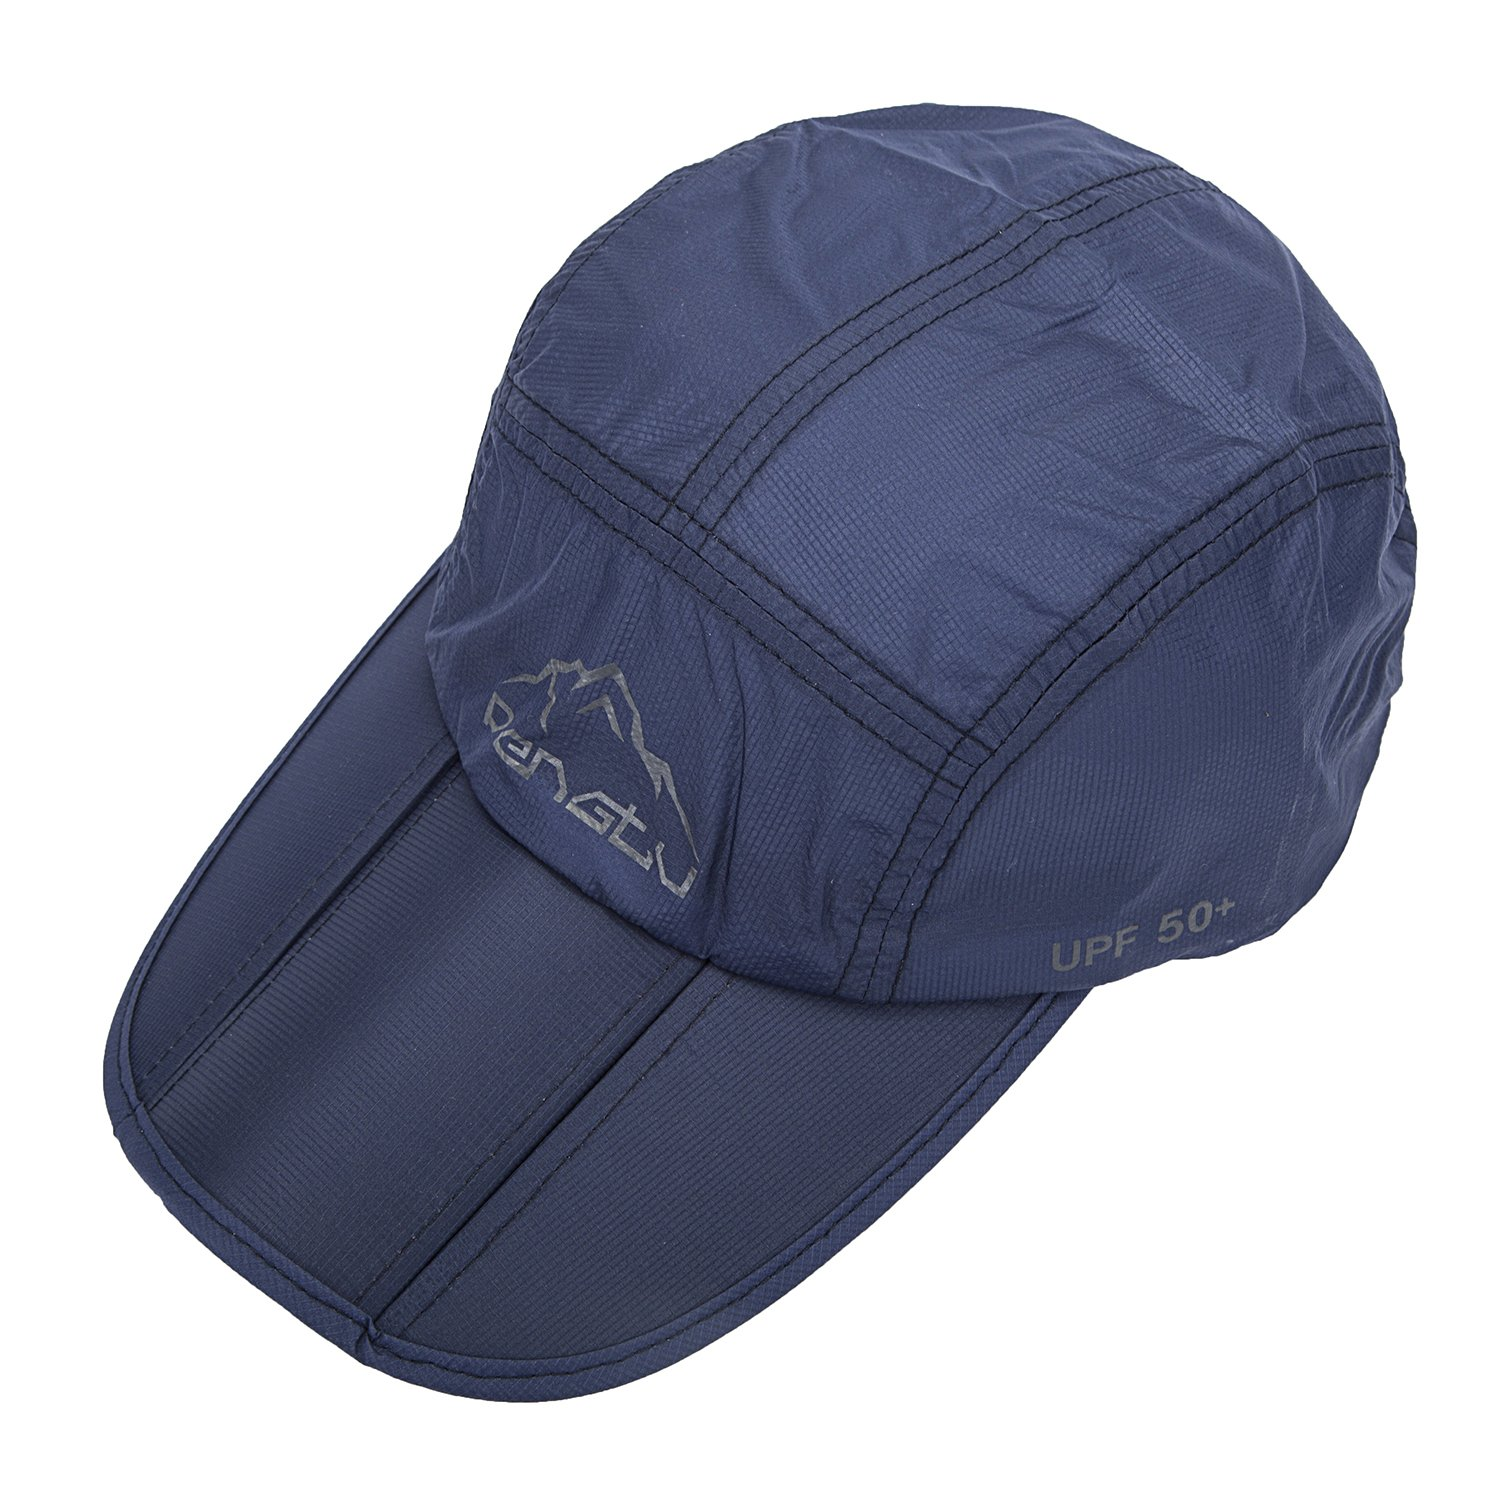 WINCAN Summer Baseball Cap with Bill Quick Dry Mesh Back UPF50 Portable Sun Hats